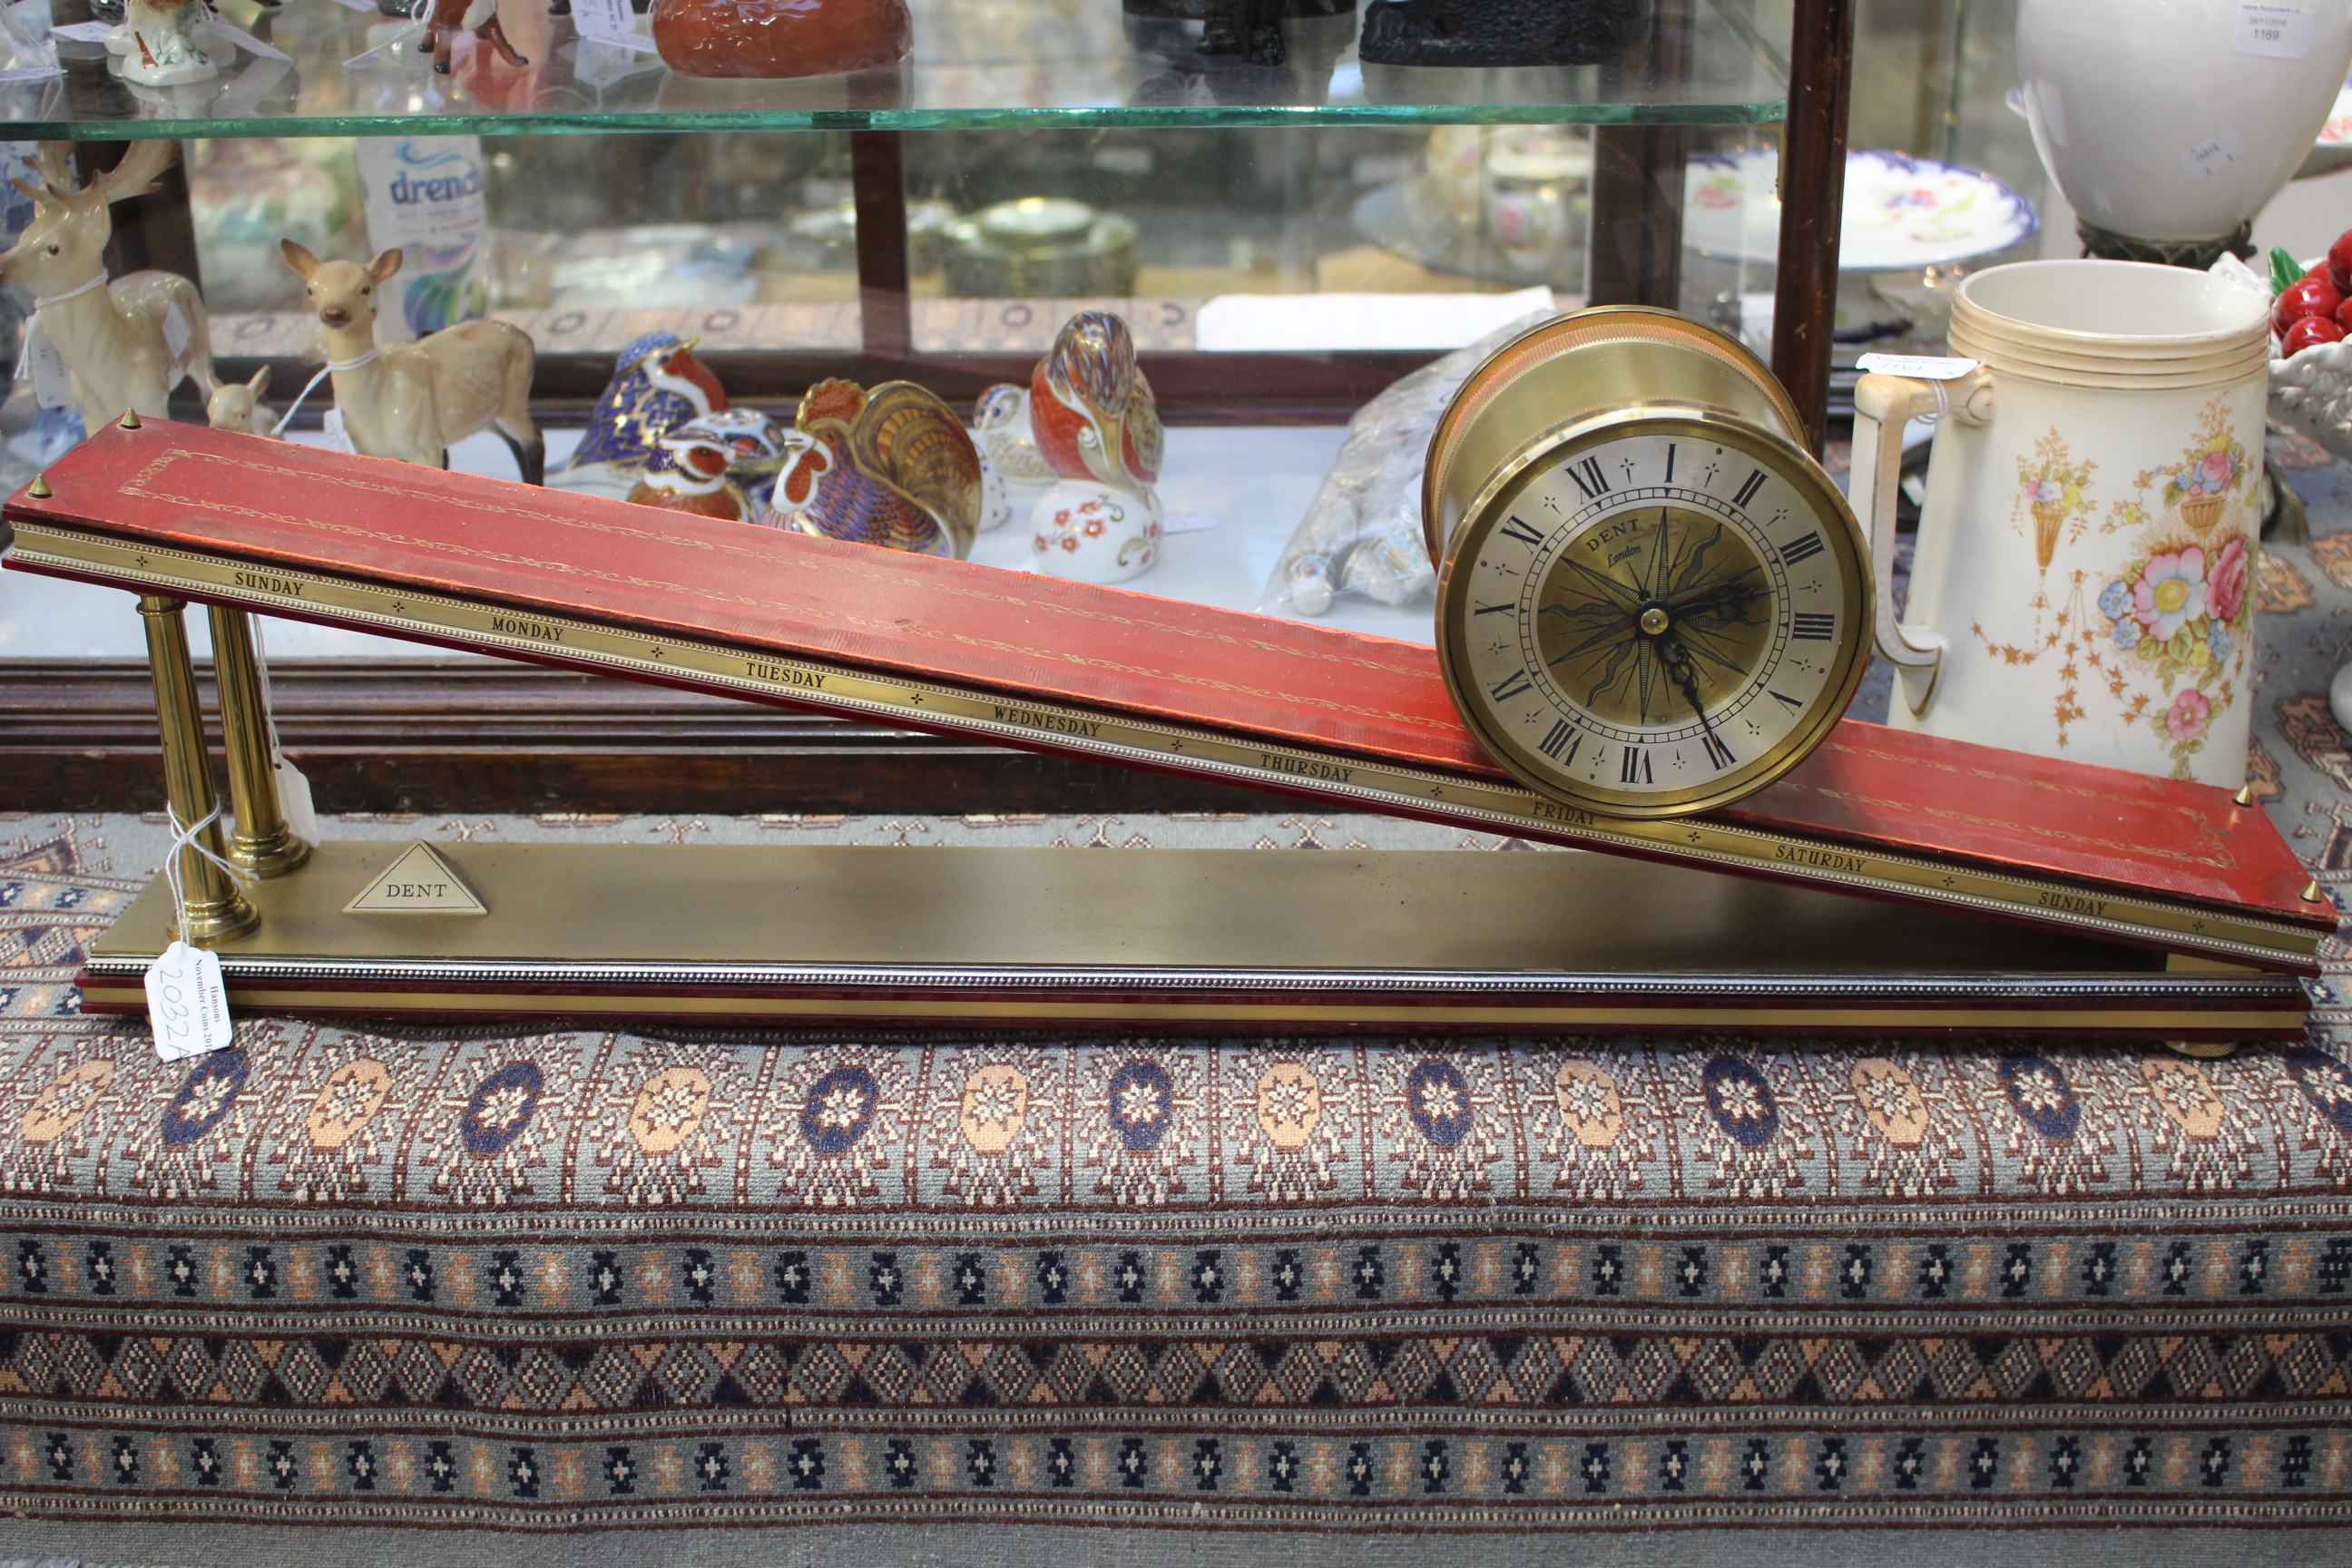 Lot 2032A - A Dent of London Inclined Plane Mantel Clock, limited to an edition of 500,